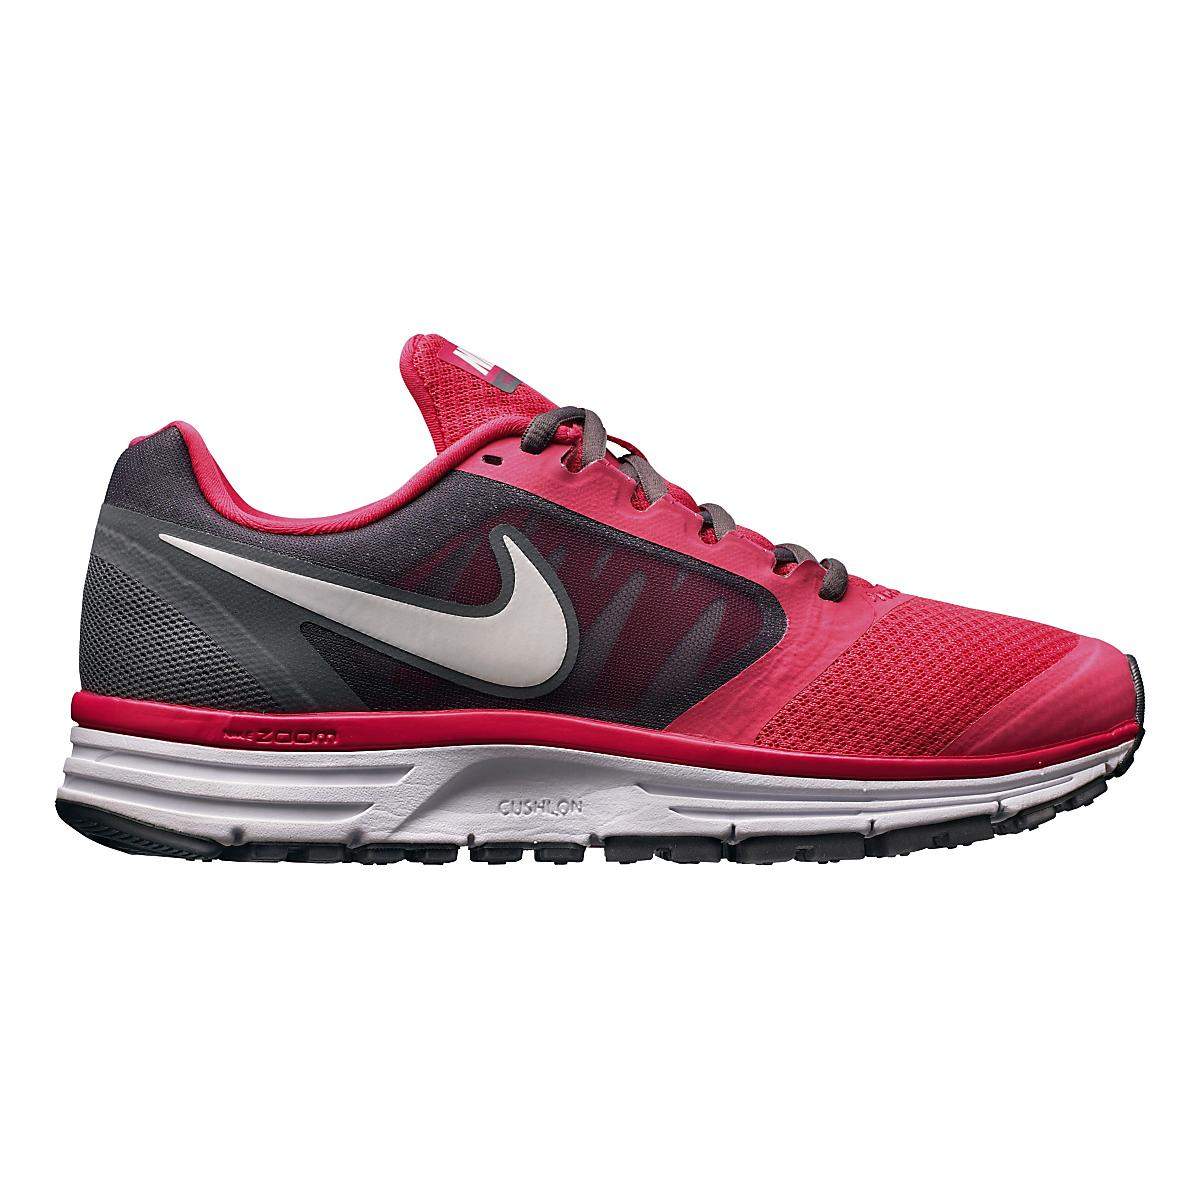 Womens Nike Zoom Vomero+ 8 Running Shoe at Road Runner Sports 7a4d1593b